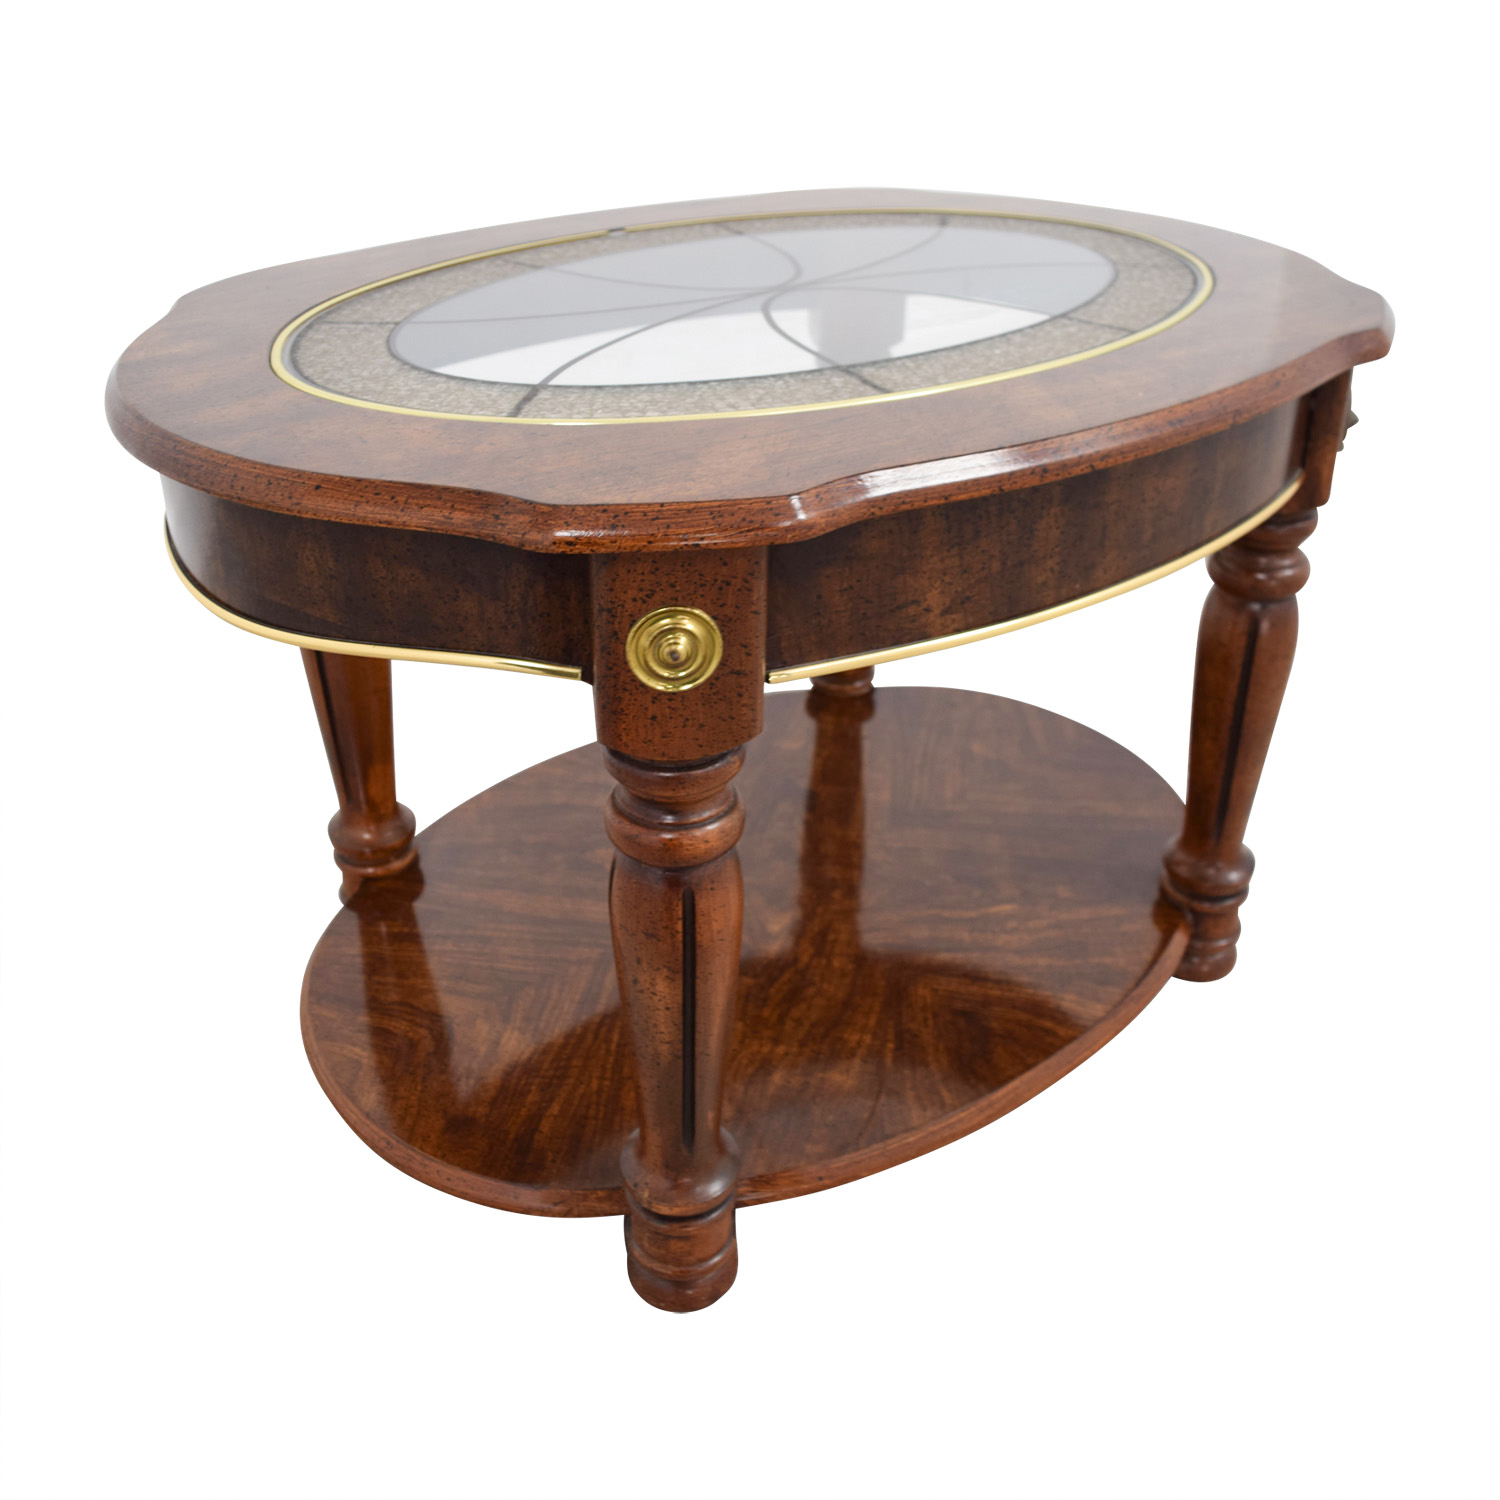 85 off vintage small round coffee table tables. Black Bedroom Furniture Sets. Home Design Ideas